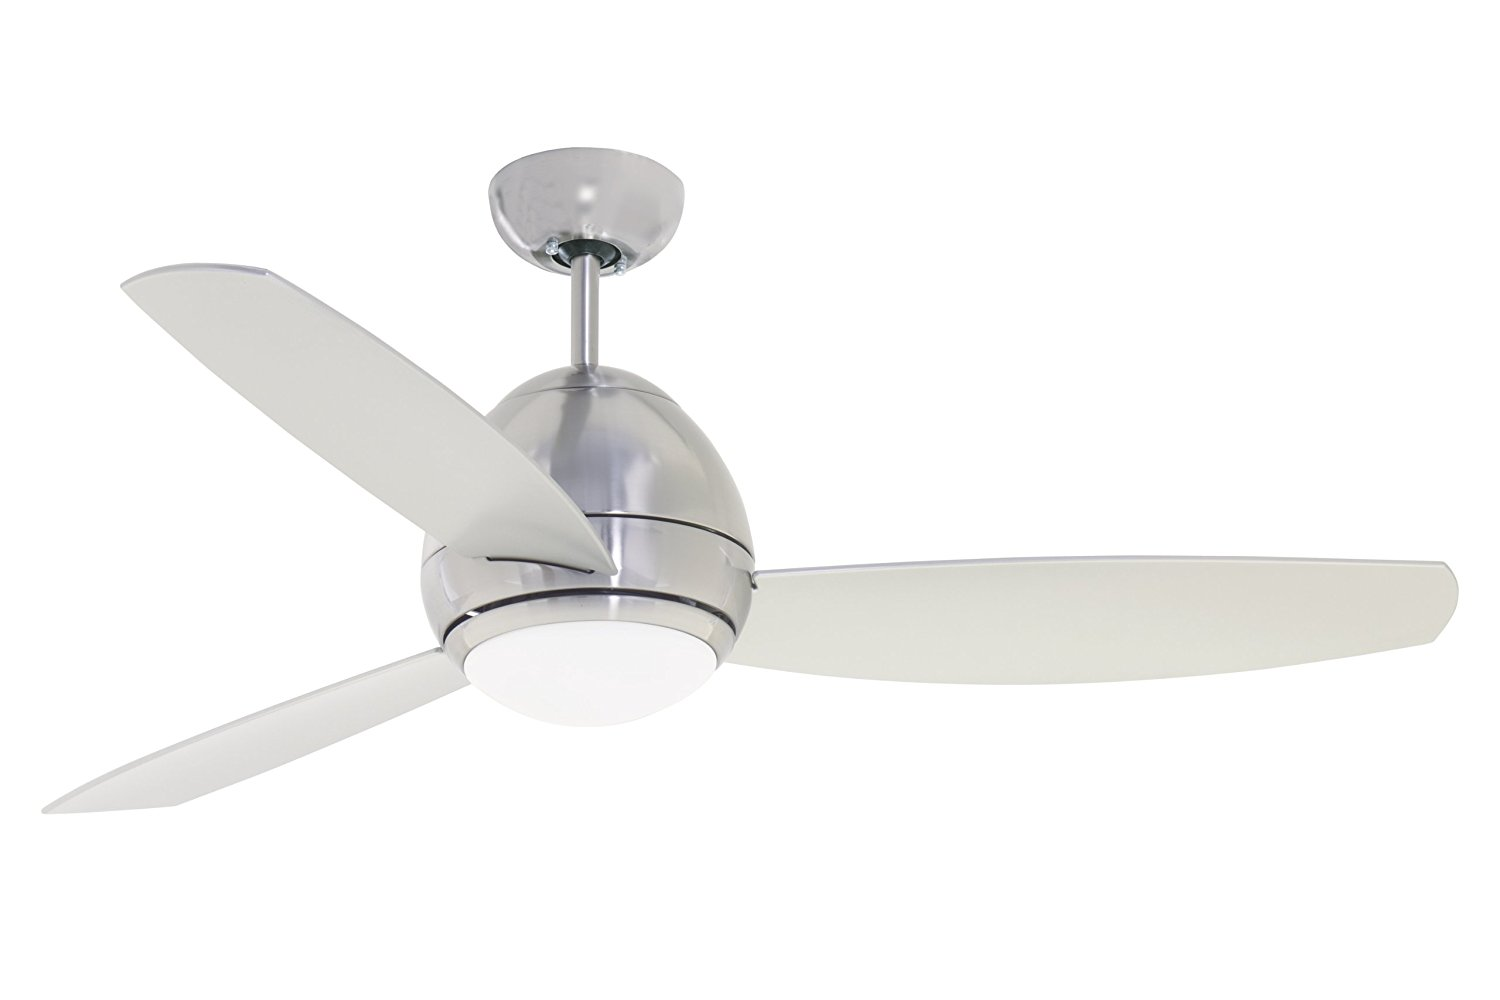 Emerson Ceiling Fans CF244BS, Curva, Modern Indoor Outdoor Ceiling Fan With Light And Remote, Wet Rated, 44-Inch Blades, Brushed Steel Finish